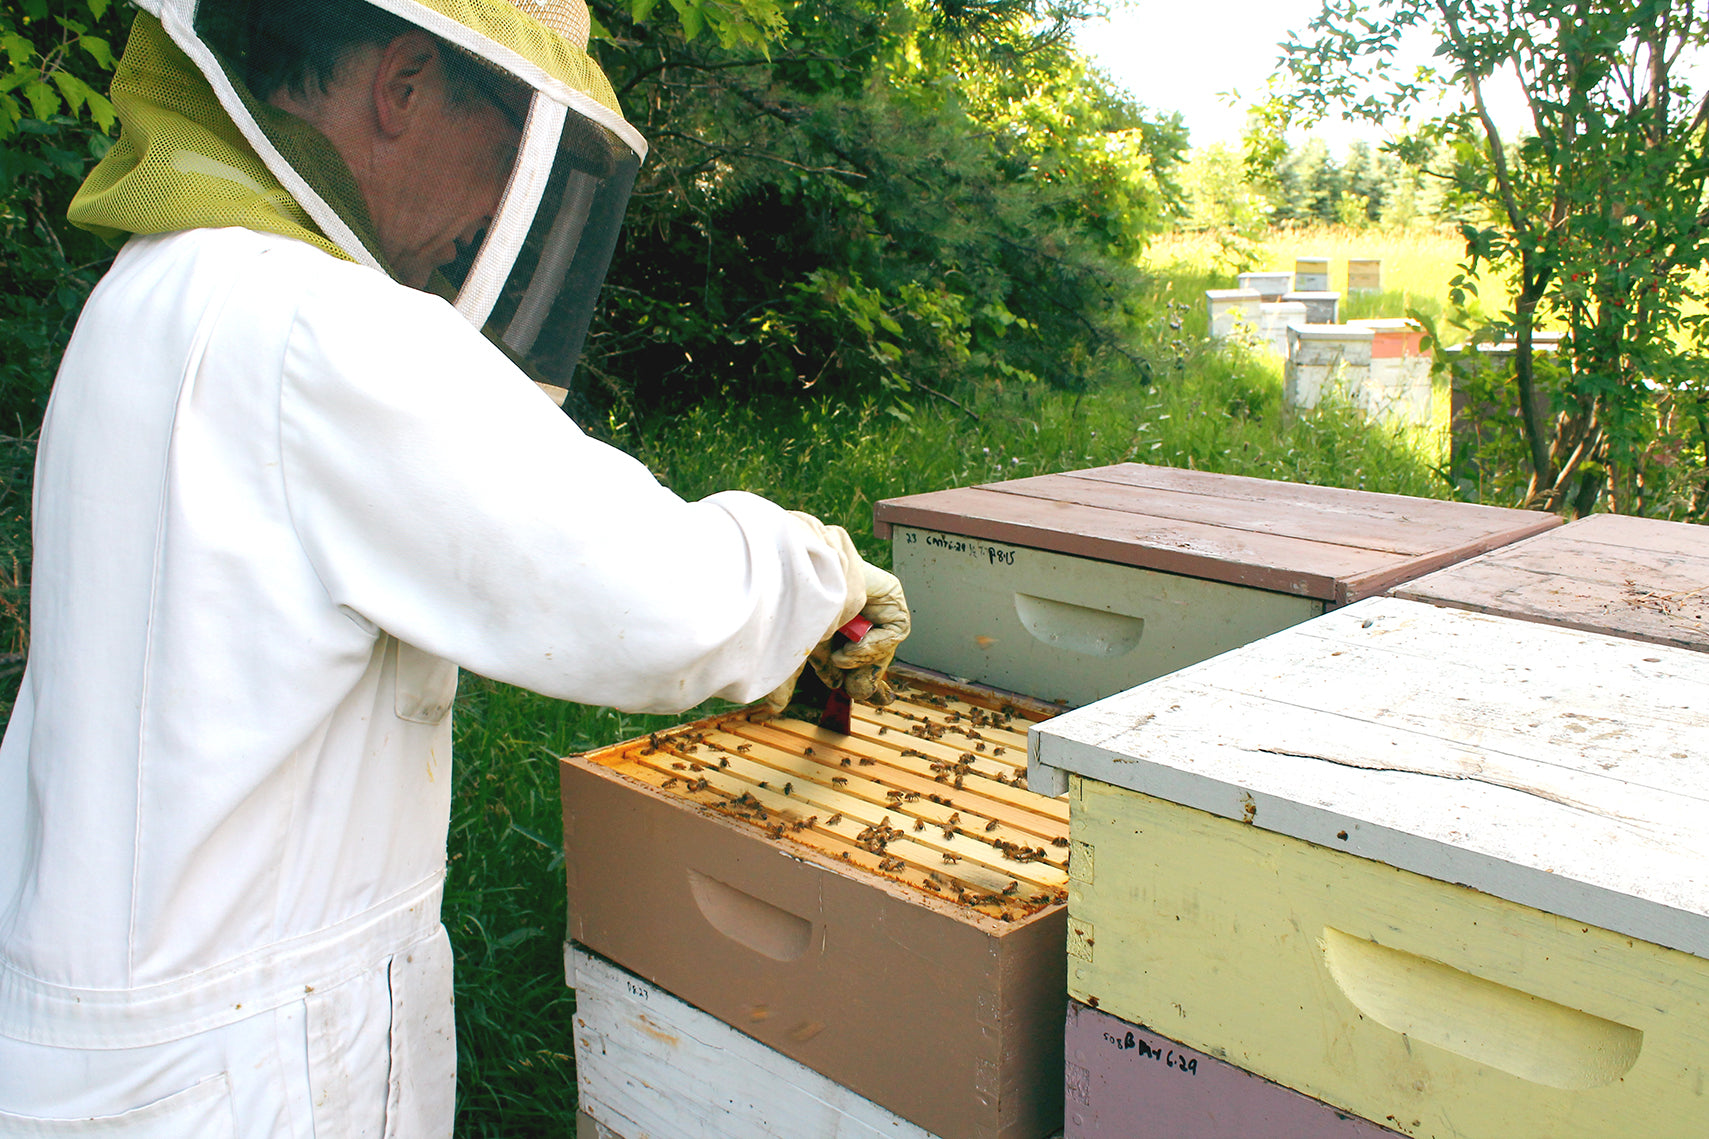 Ames Farm Honey Beekeeper on Duty